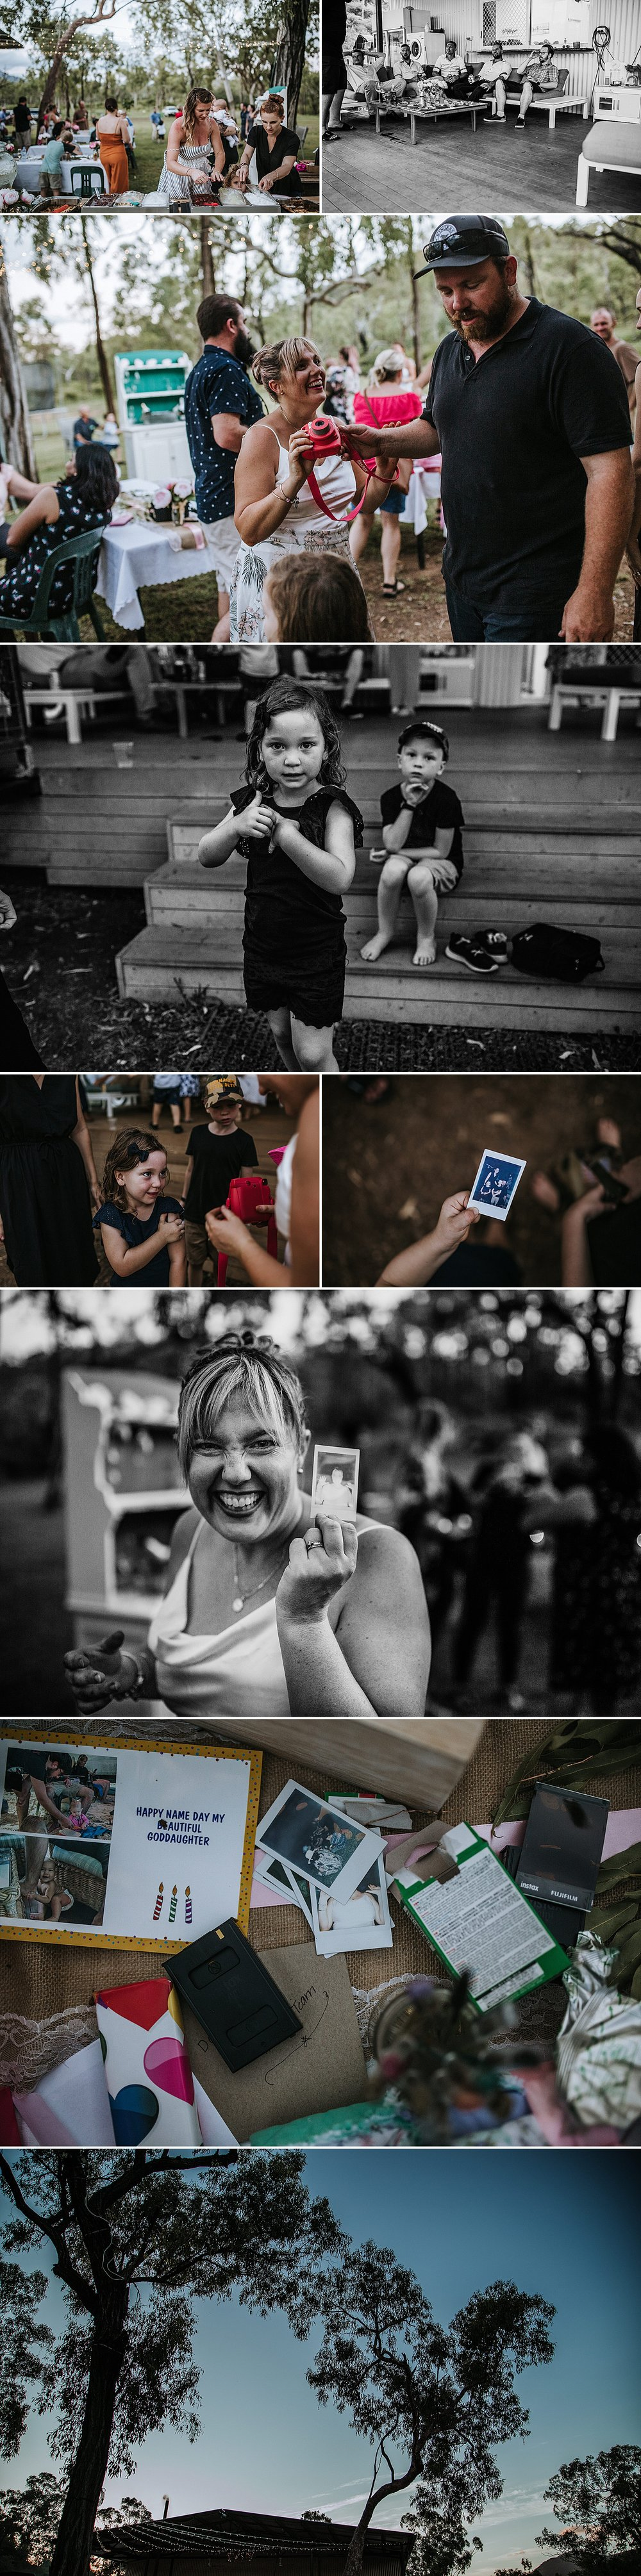 Family-intimate-casual-relaxed-event-documentary-storytelling-photography